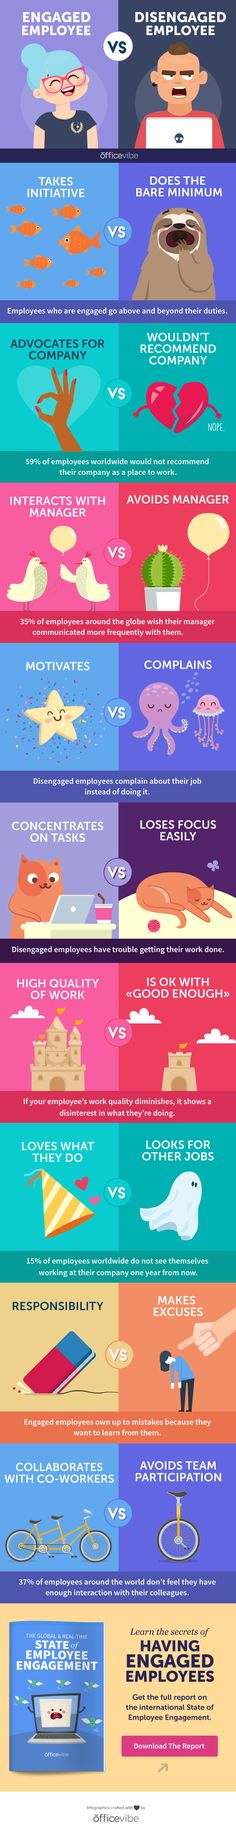 Engaged Vs. Disengaged Employees